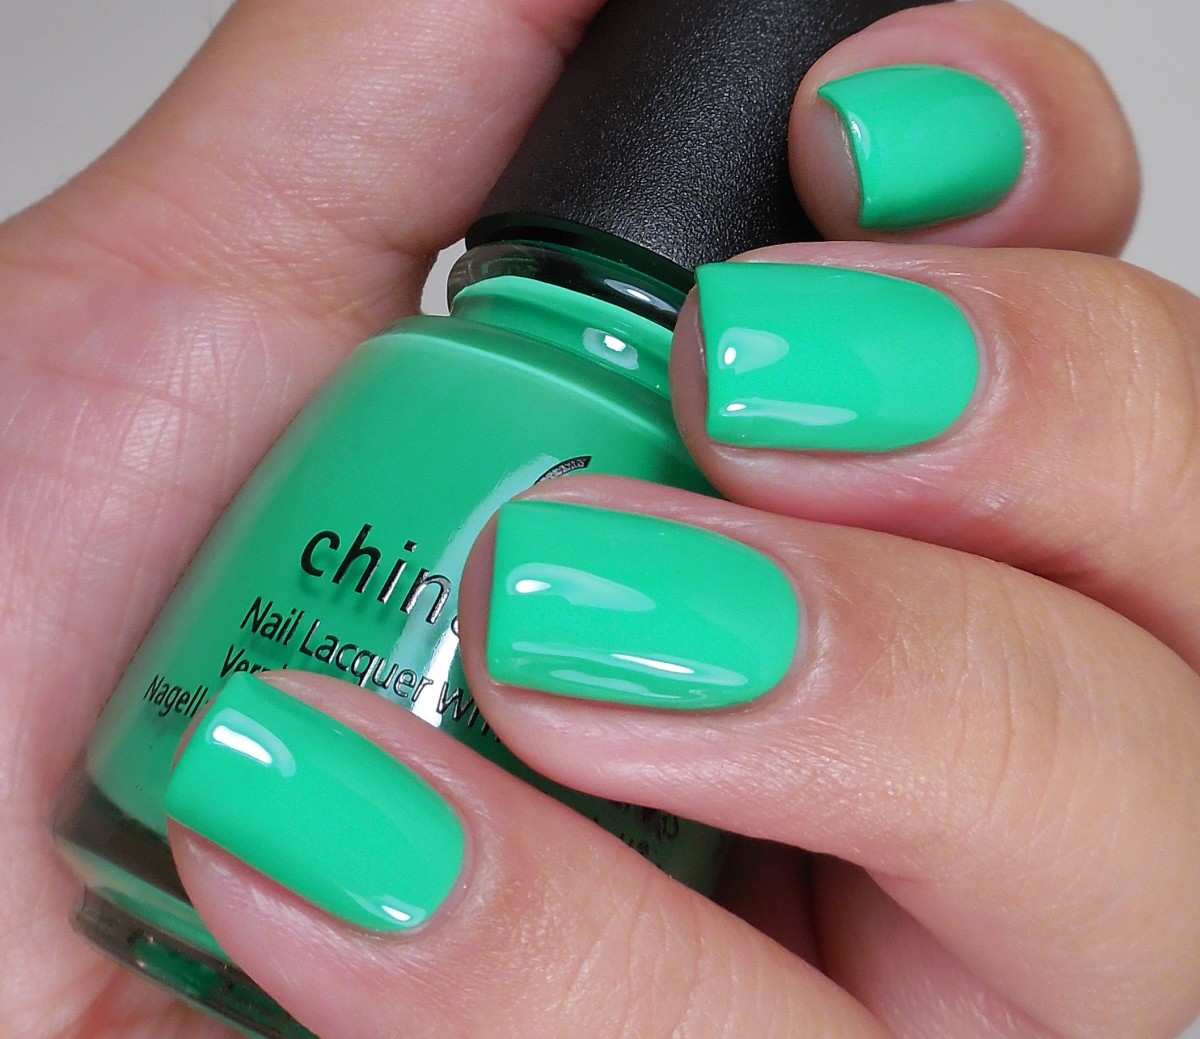 """Treble Maker"" by China Glaze."